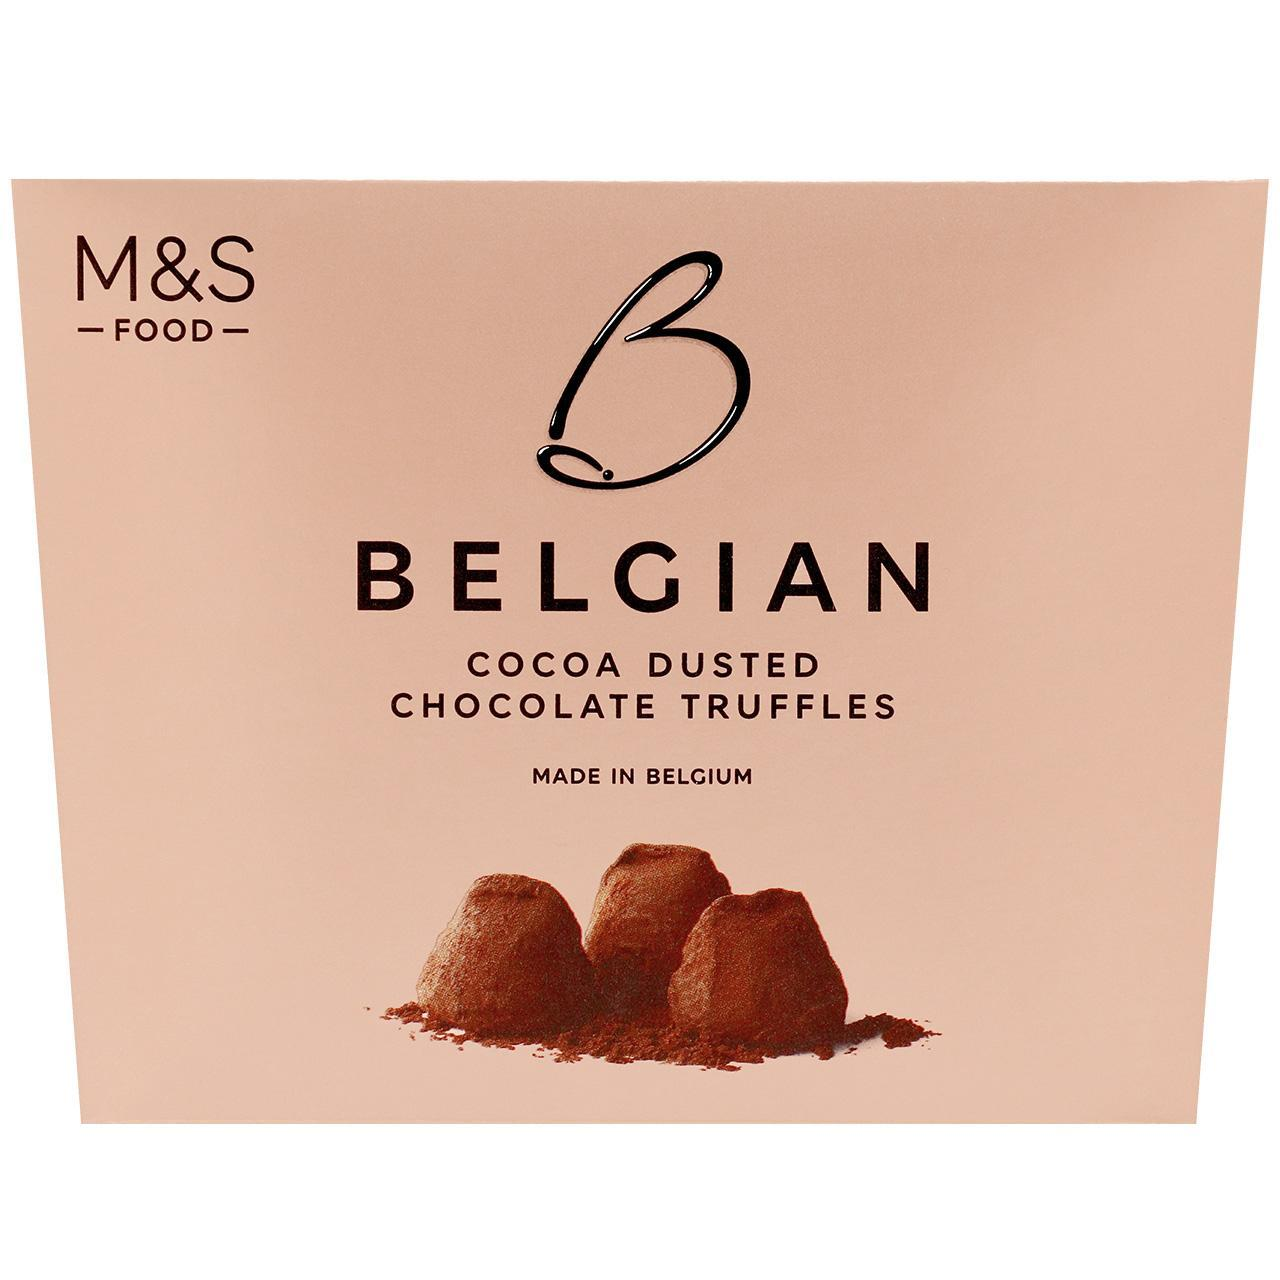 Belgian Cocoa Dusted Chocolate Truffles 260g